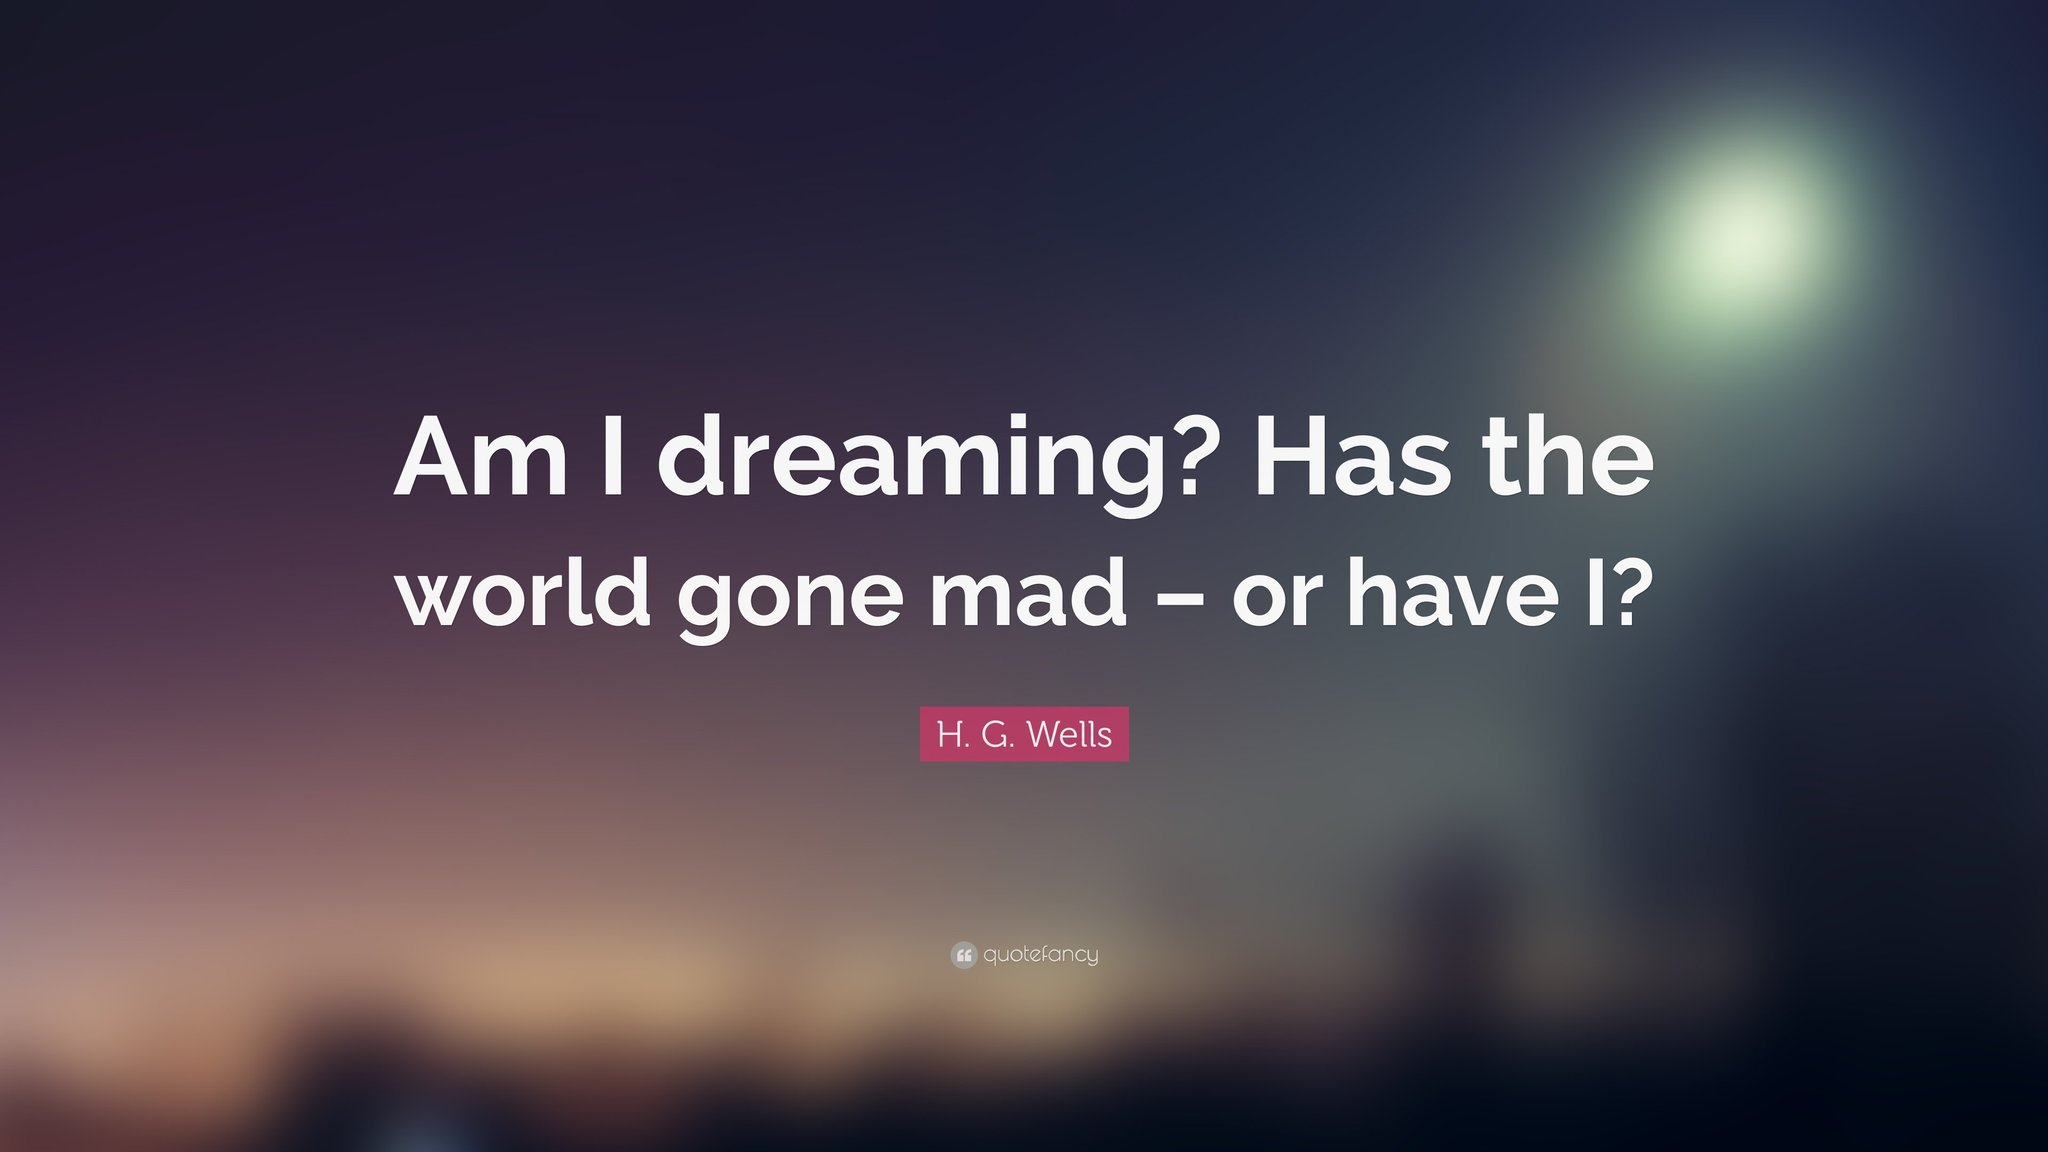 93096-H-G-Wells-Quote-Am-I-dreaming-Has-the-world-gone-mad-or-have-I.jpg